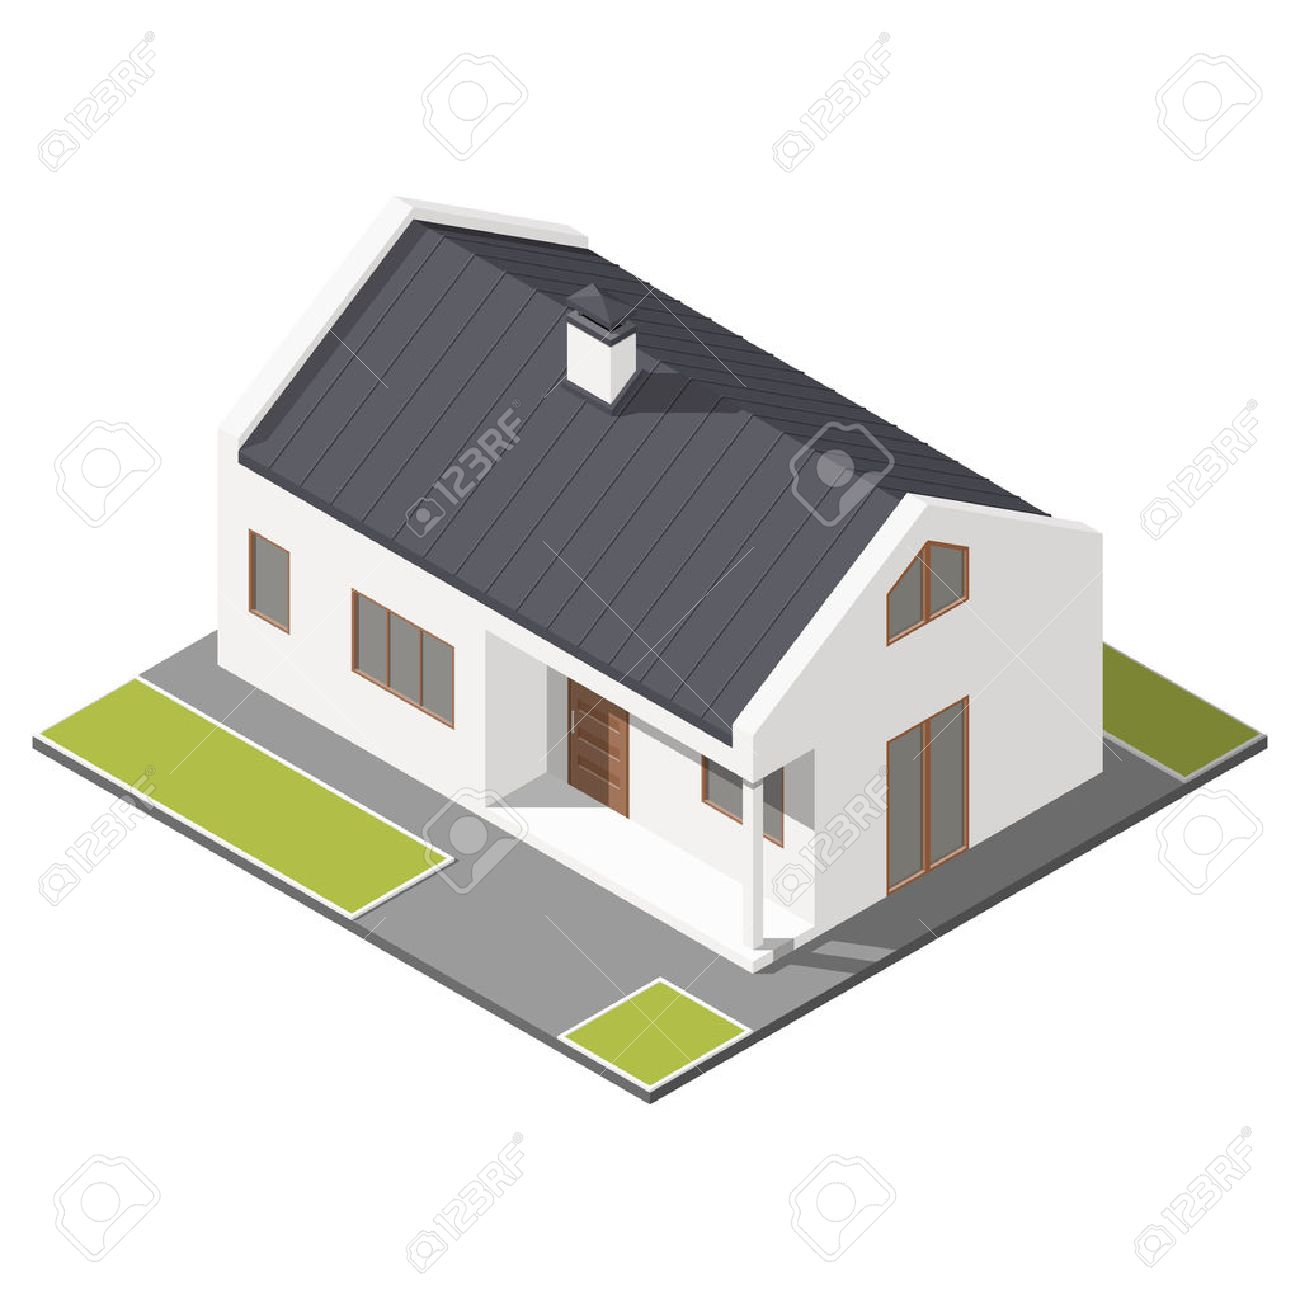 one storey house with slant roof isometric icon set graphic one storey house with slant roof isometric icon set graphic illustration stock vector 55345645